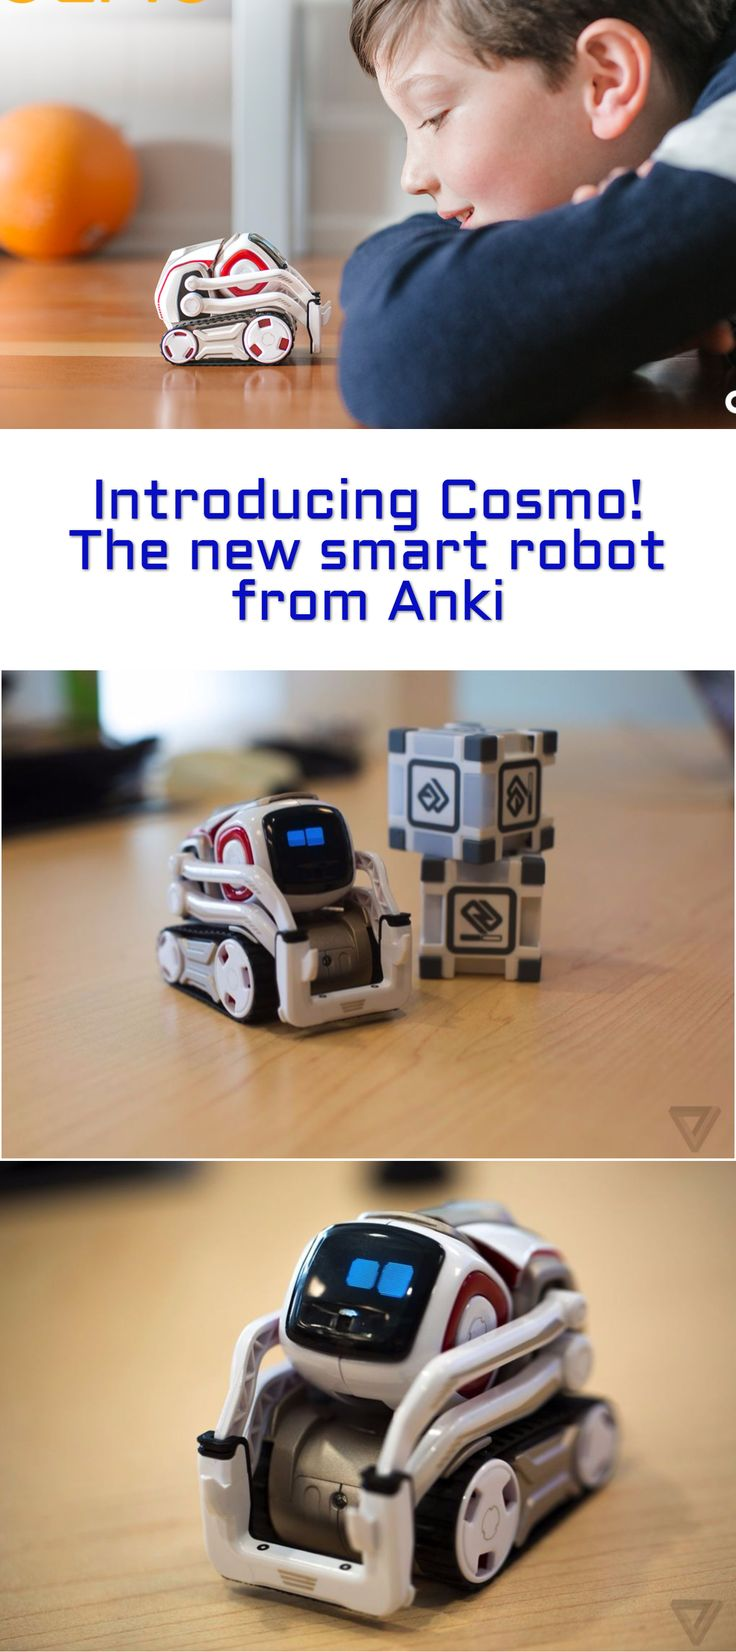 The new Anki Cosmo Robot is a great high tech toy with advanced A.I. that comes with a raft of features.